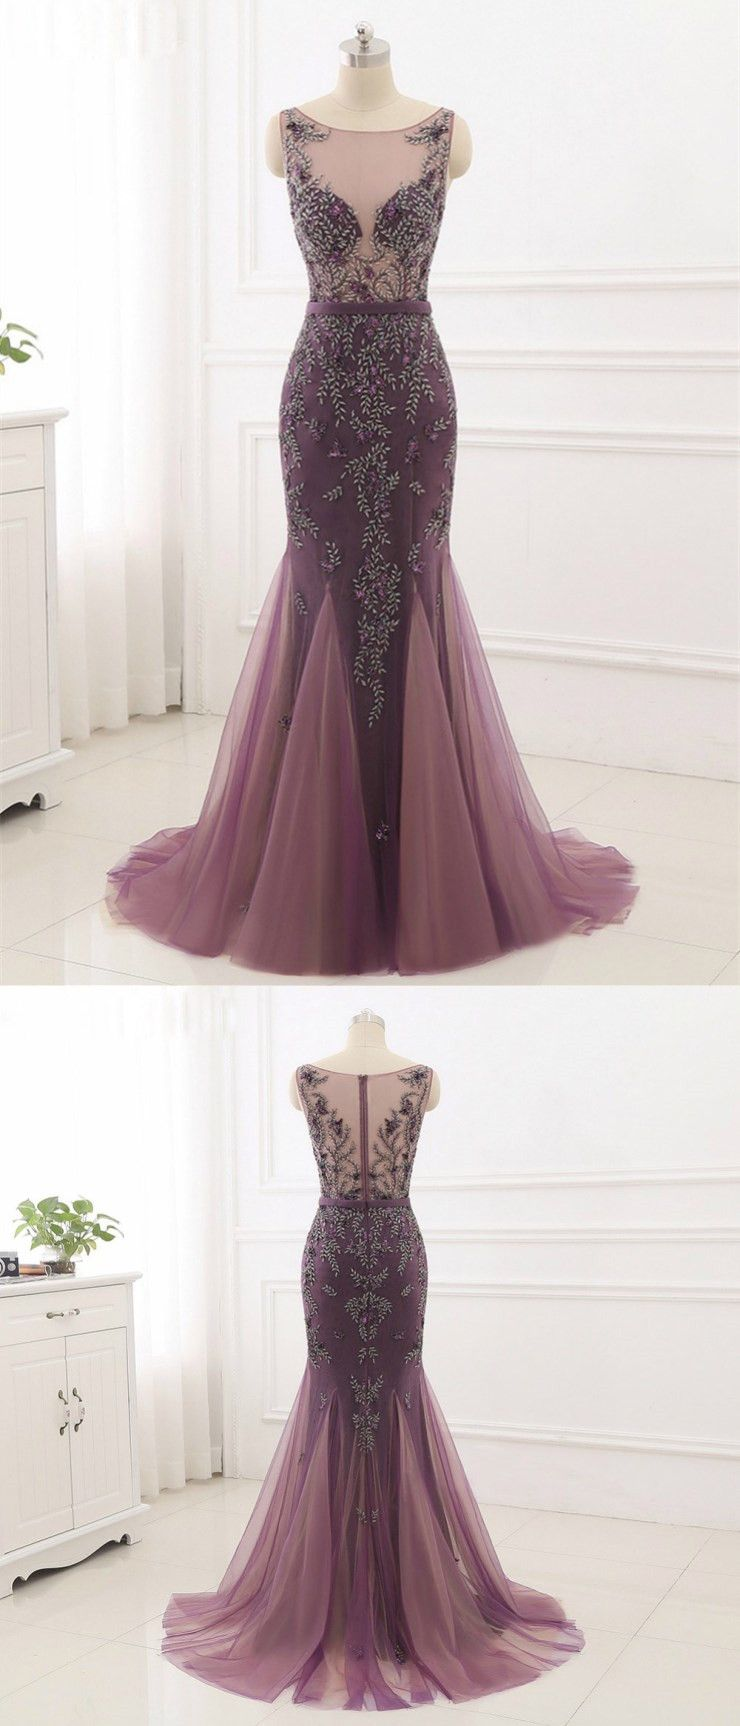 Mermaid scoopneck sweep train tulle dusty rose prom dresses with